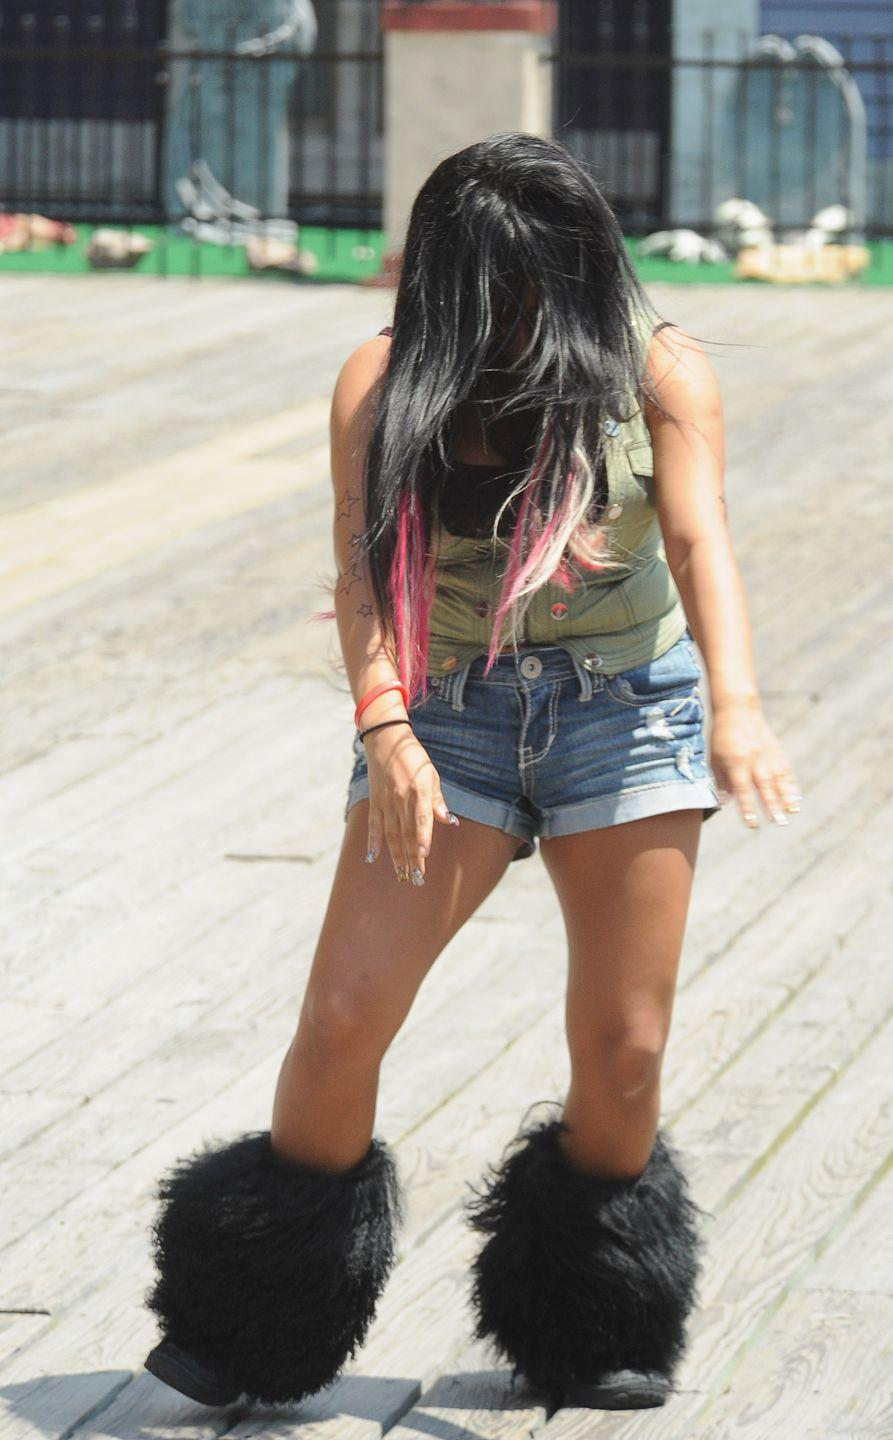 <p>It just may have been Nicole Polizzi (better known as Snooki) from <em>Jersey Shore</em> who made huge furry boots popular—and hopefully they'll never make their way back onto a list of trends again. Not only did they make your feet and legs unnecessarily hot, but they just looked ridiculous! </p>